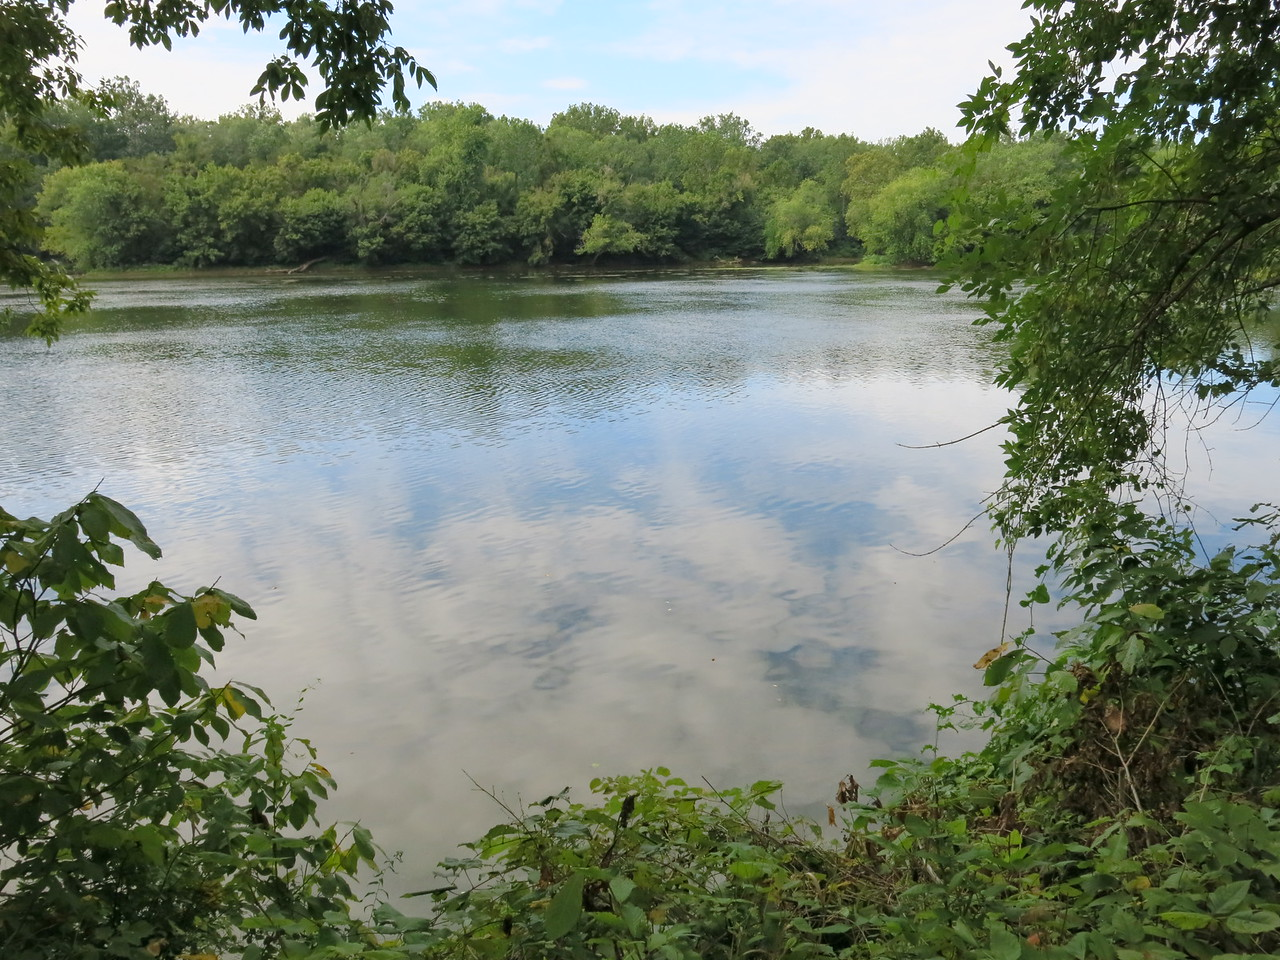 The Potomac is calm